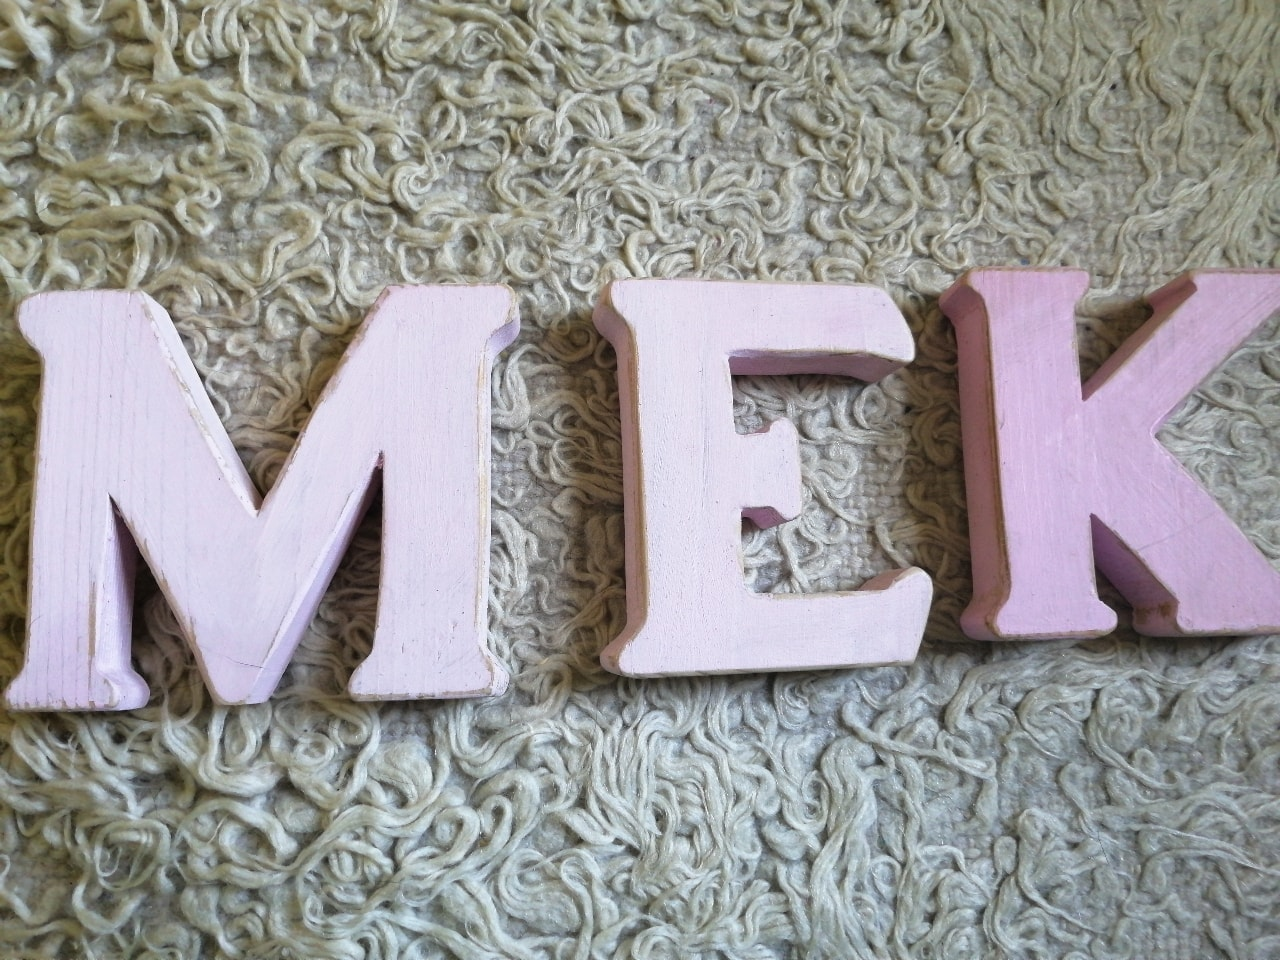 Wooden letters, E K M only